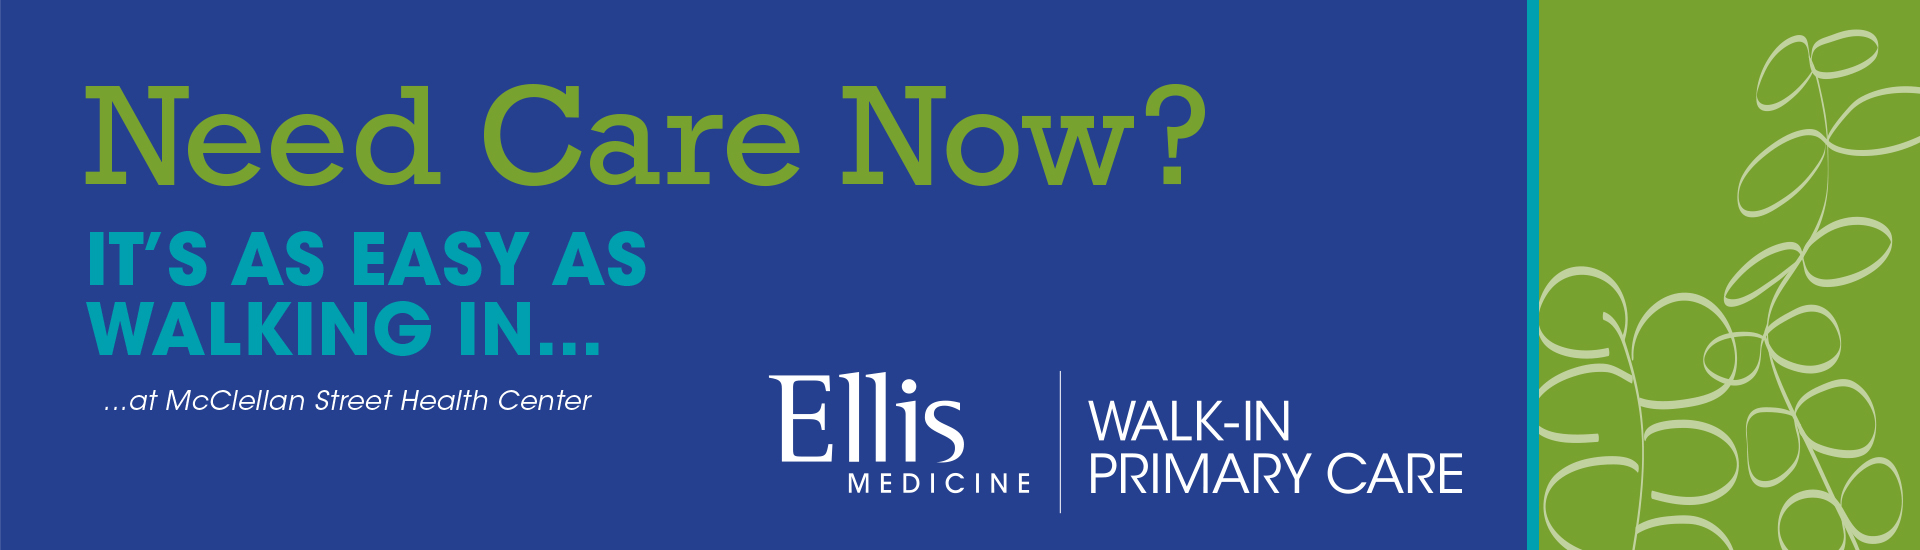 Walk-In Primary Care Now Open 7 days a week